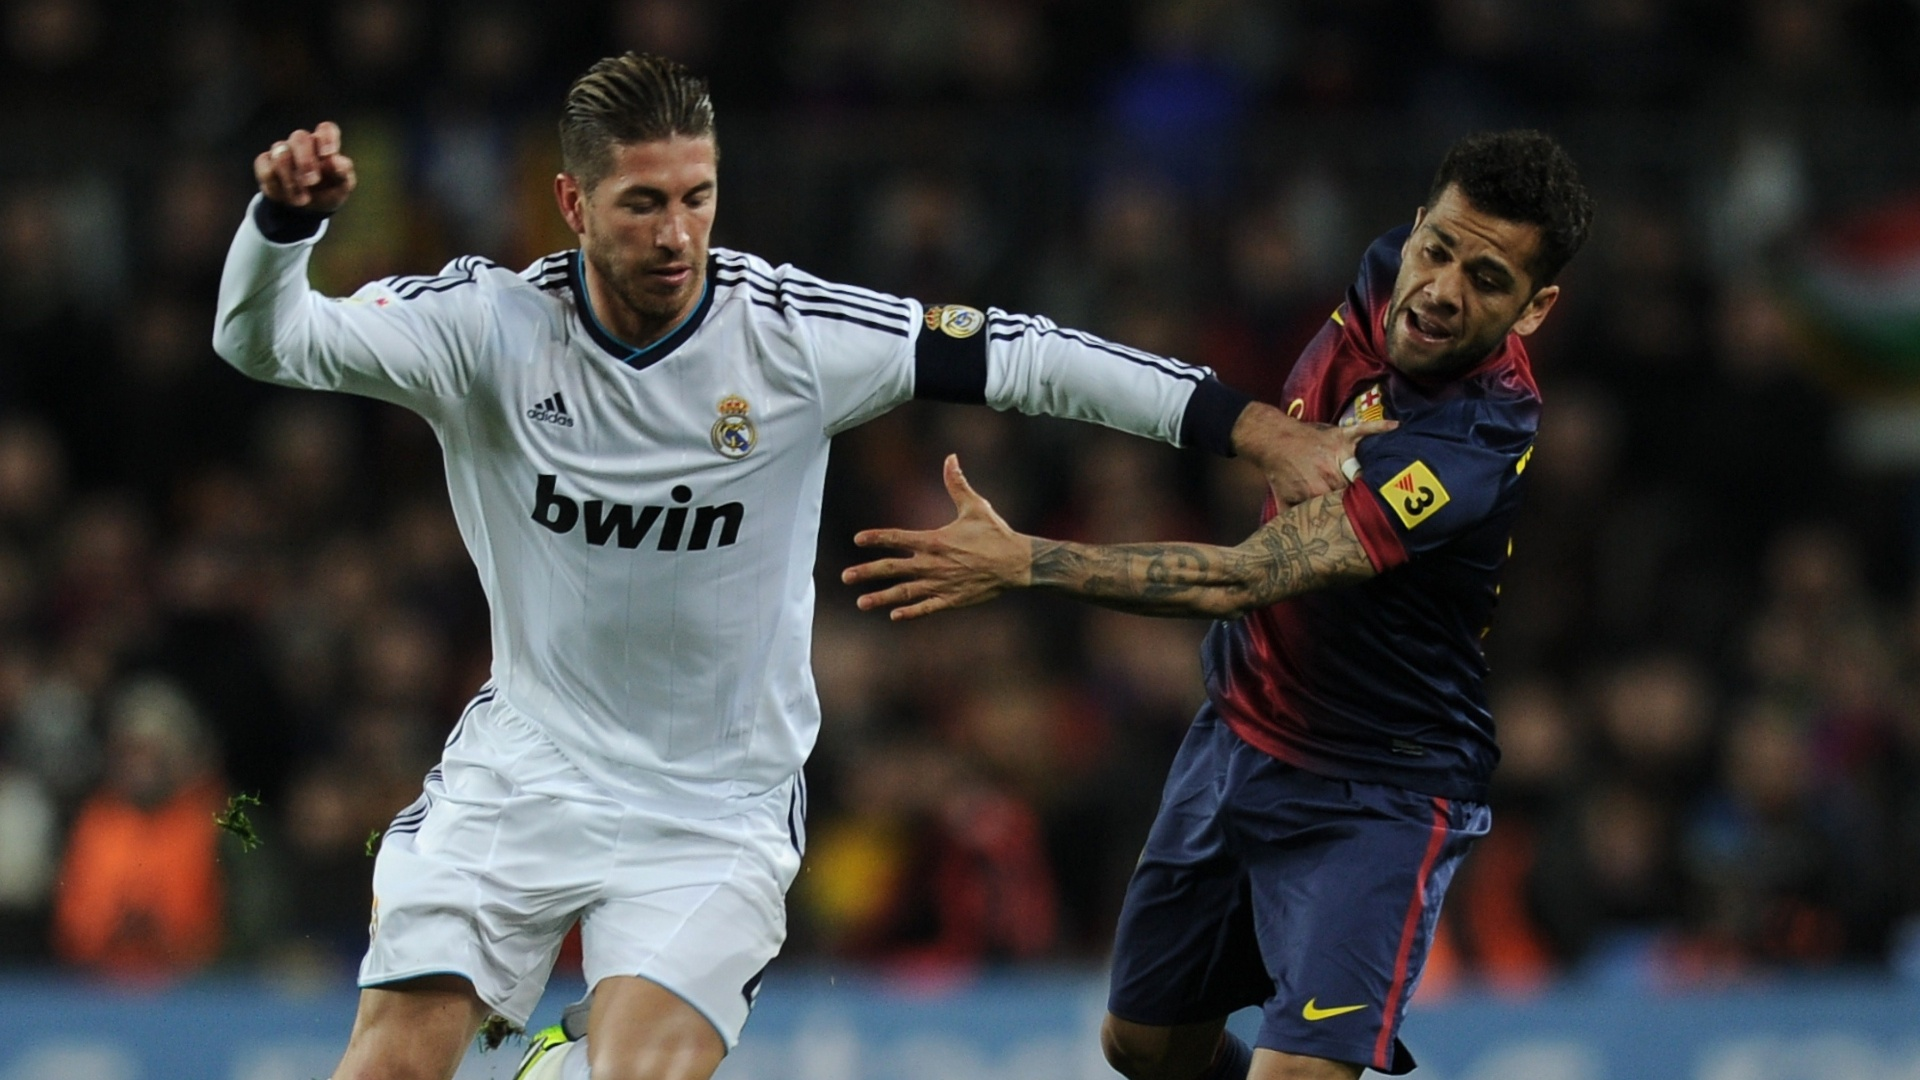 26.fev.2013 - Sergio Ramos (esq.), do Real Madrid, disputa bola com o brasileiro Daniel Alves (dir.), do Barcelona